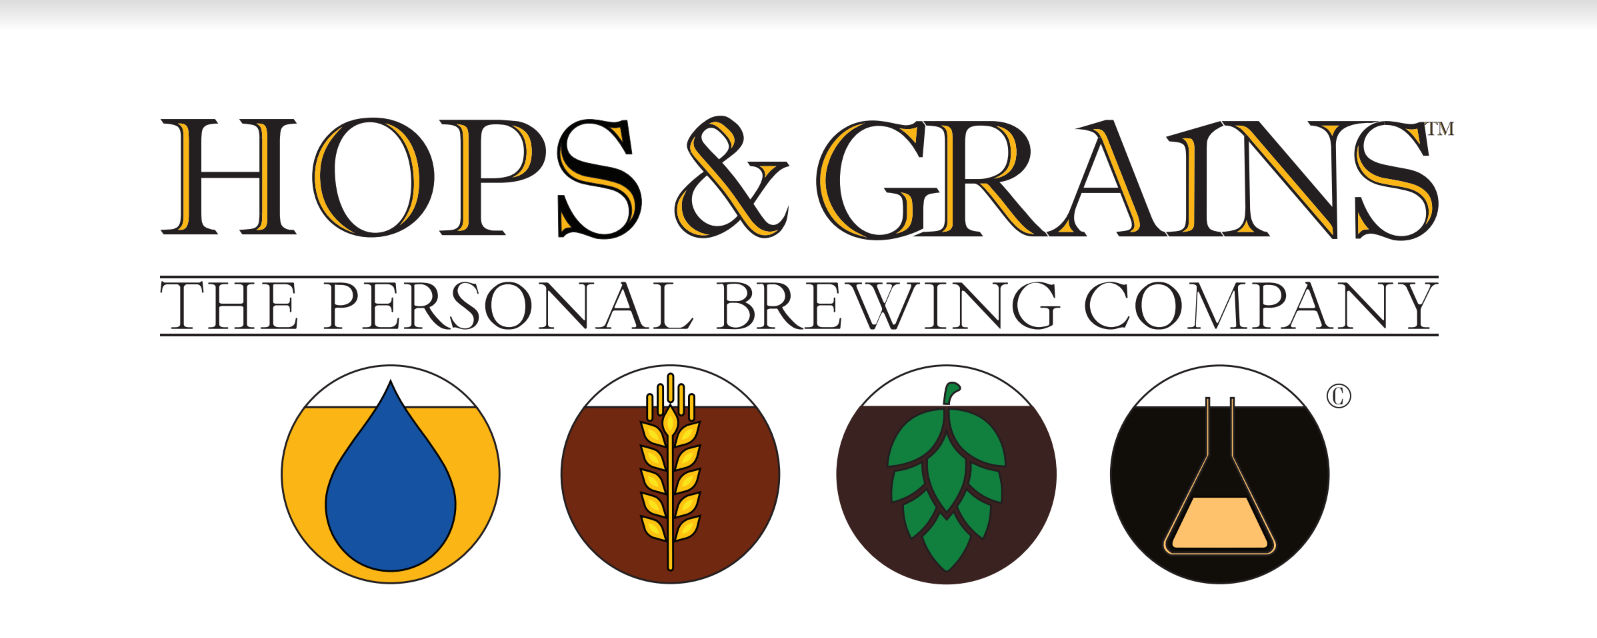 FHM-Hops and Grains